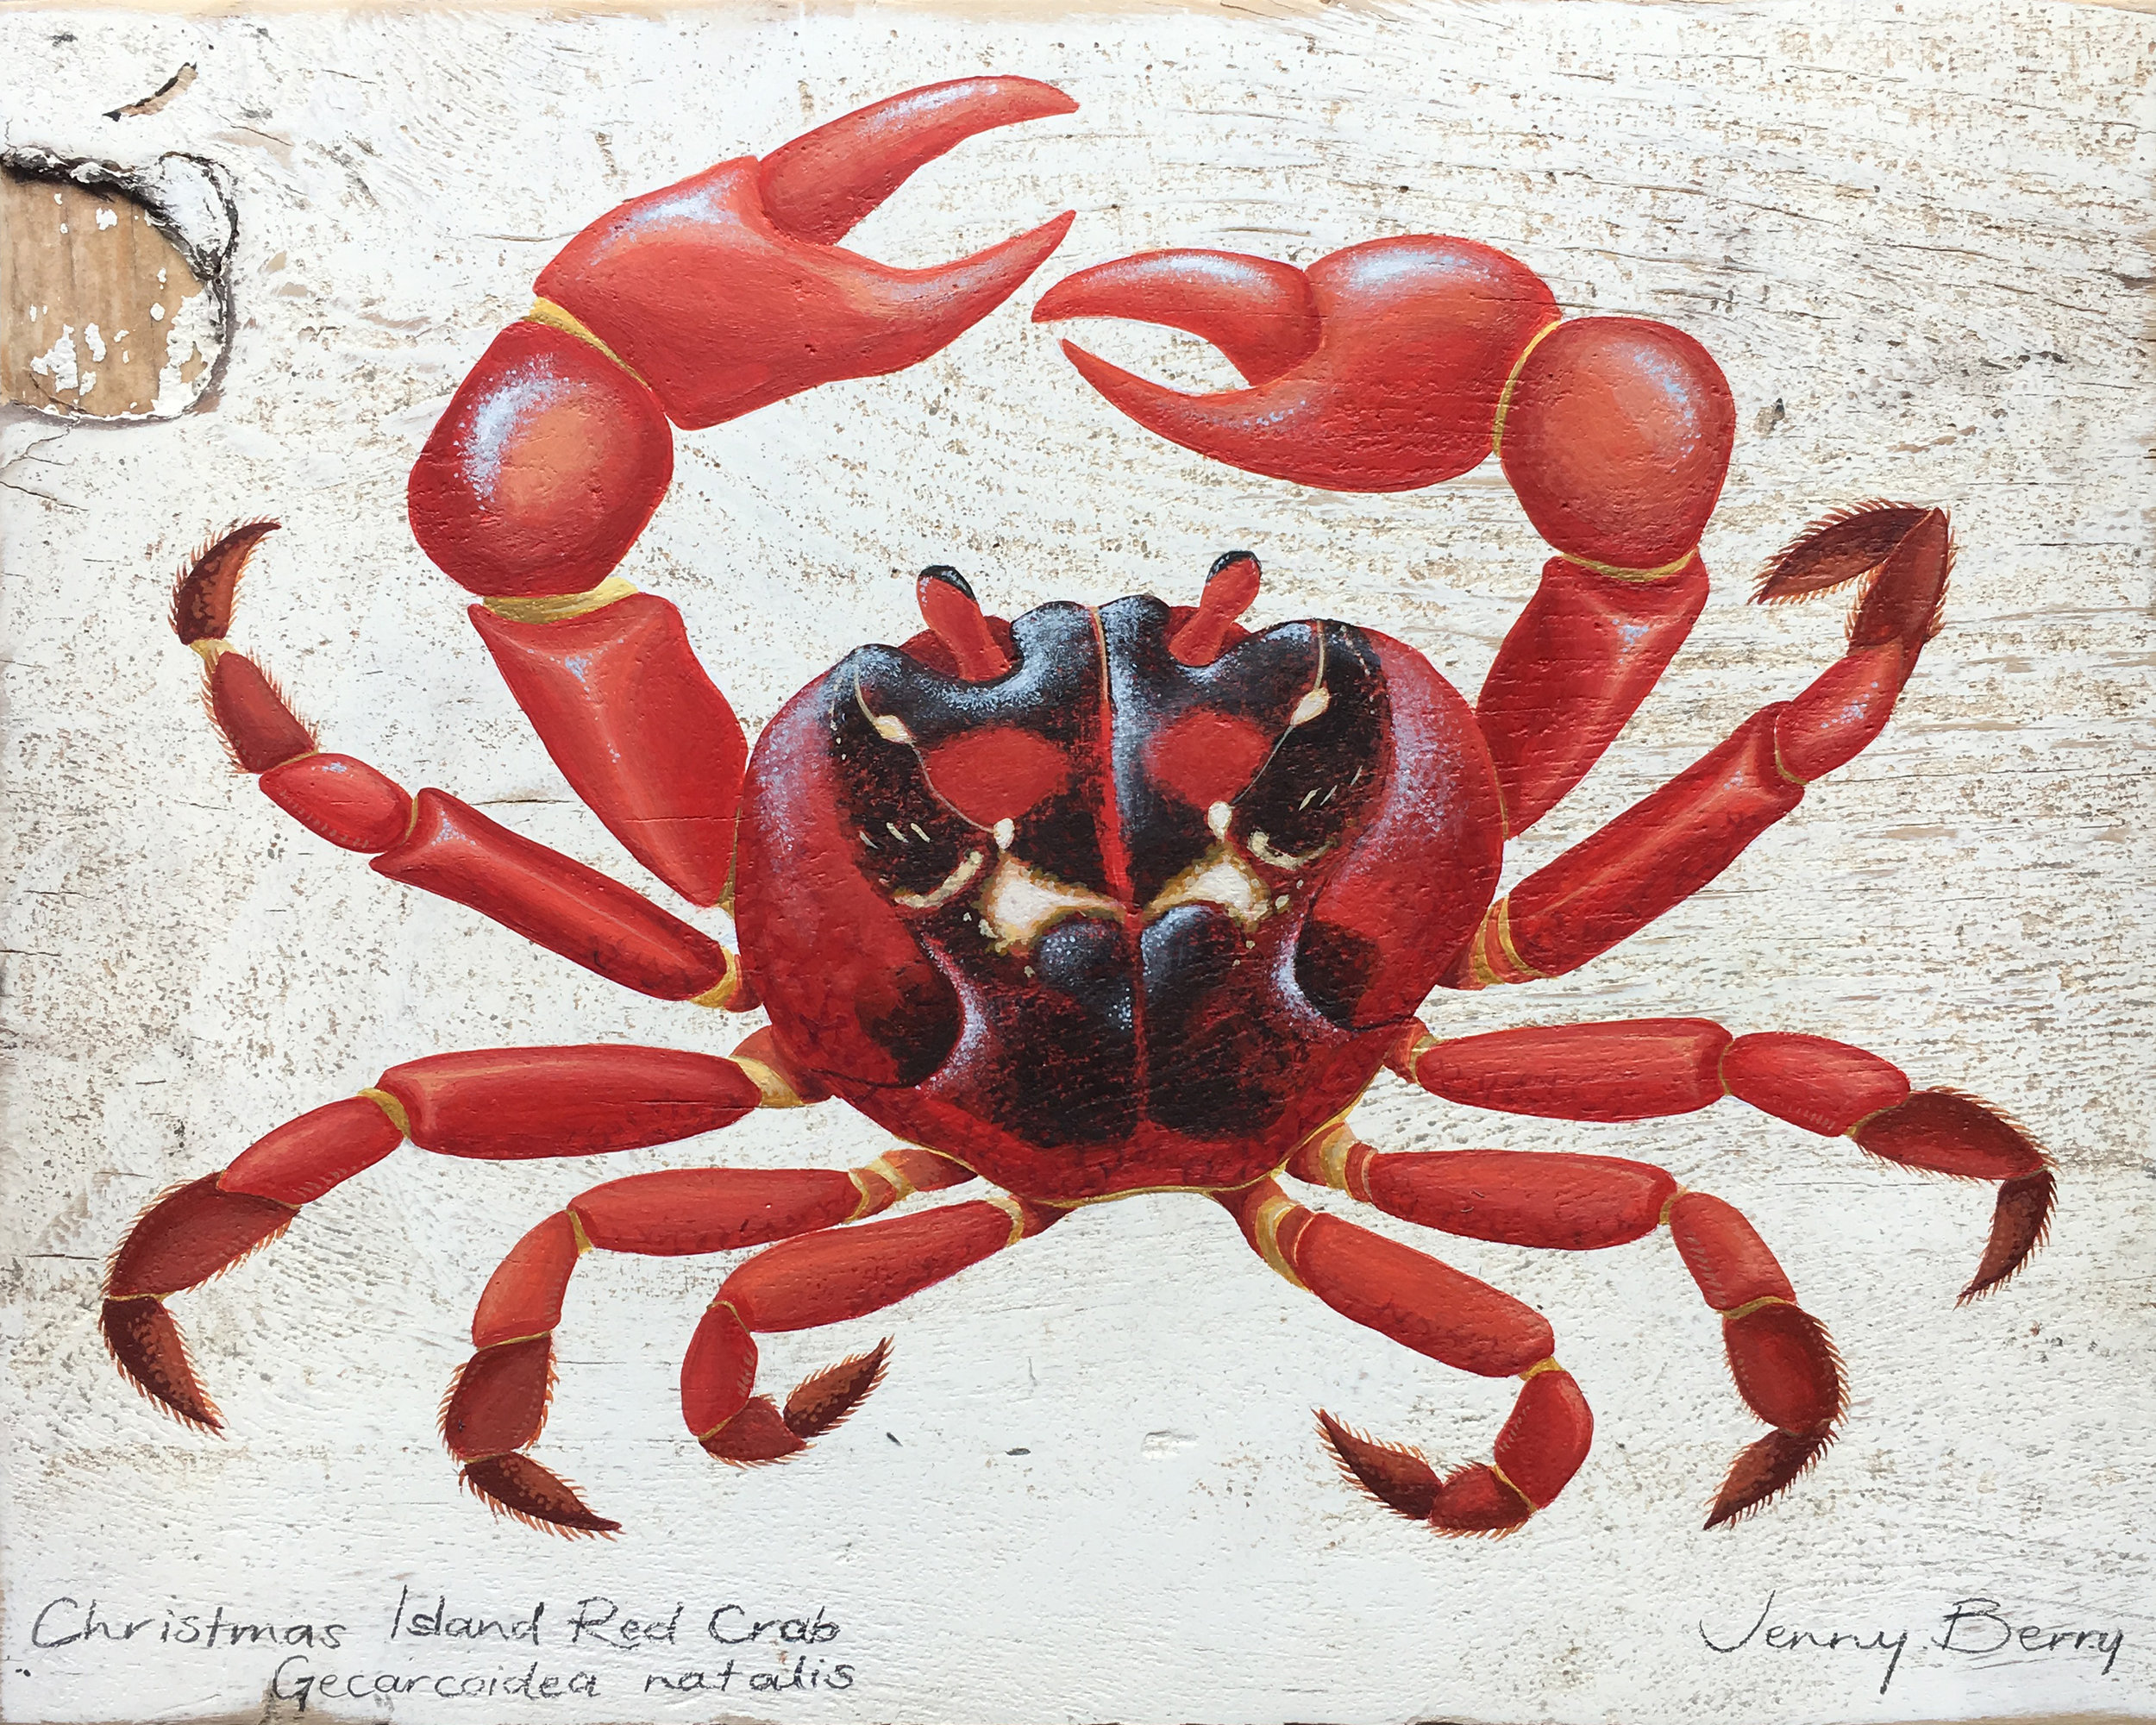 Christmas Island Red Crab.jpg